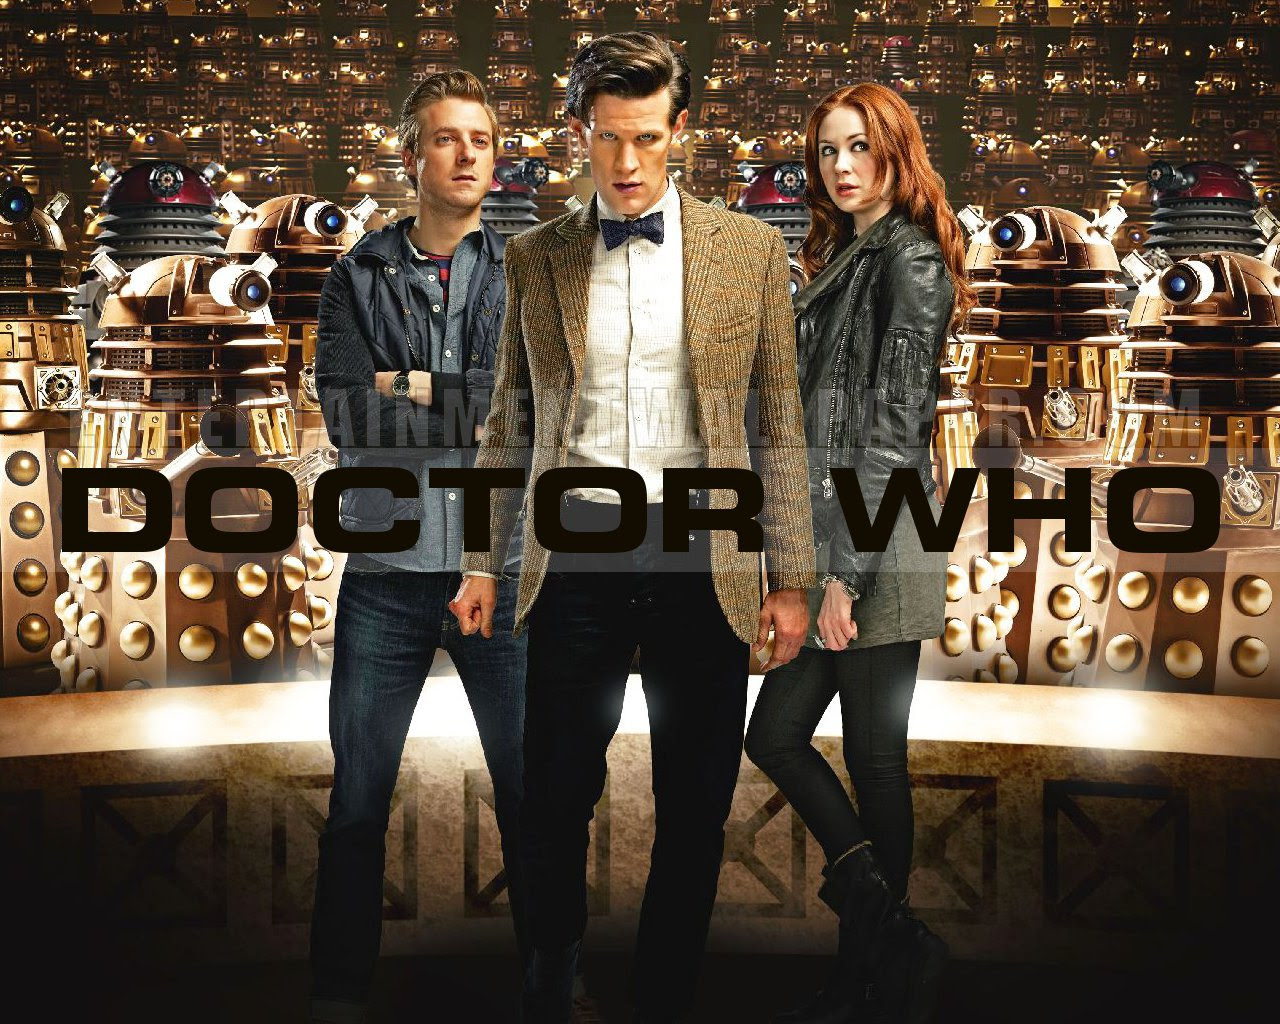 Doctor Who Series 7 Wallpaper Doctor Who Series 7 Wallpaper